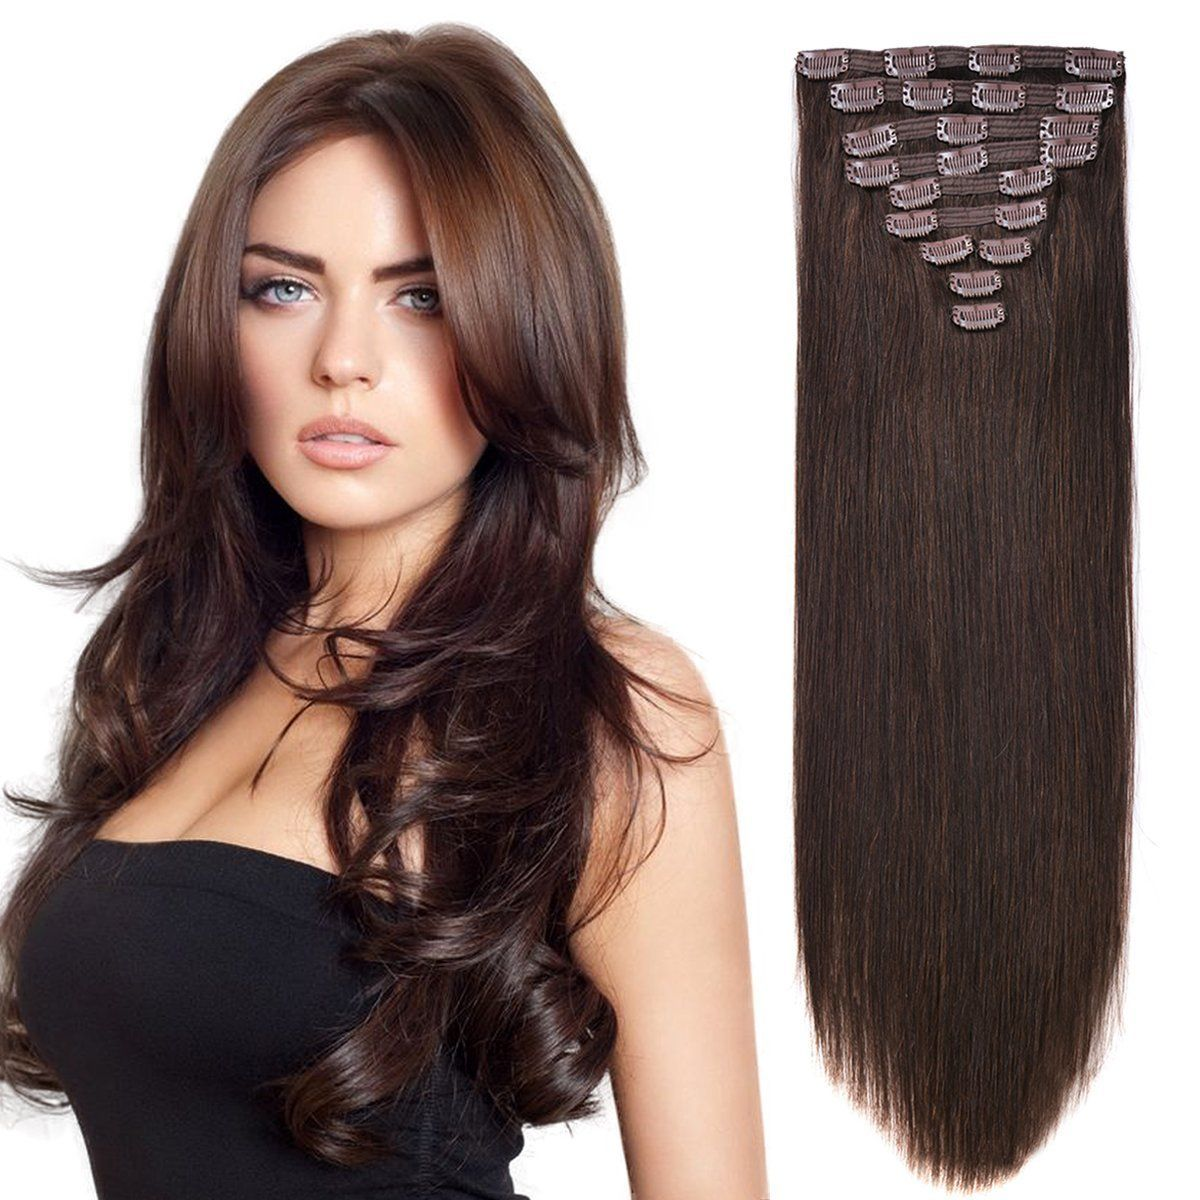 20 Human Hair Extensions Clip On Real Hair Clip In Extensions For